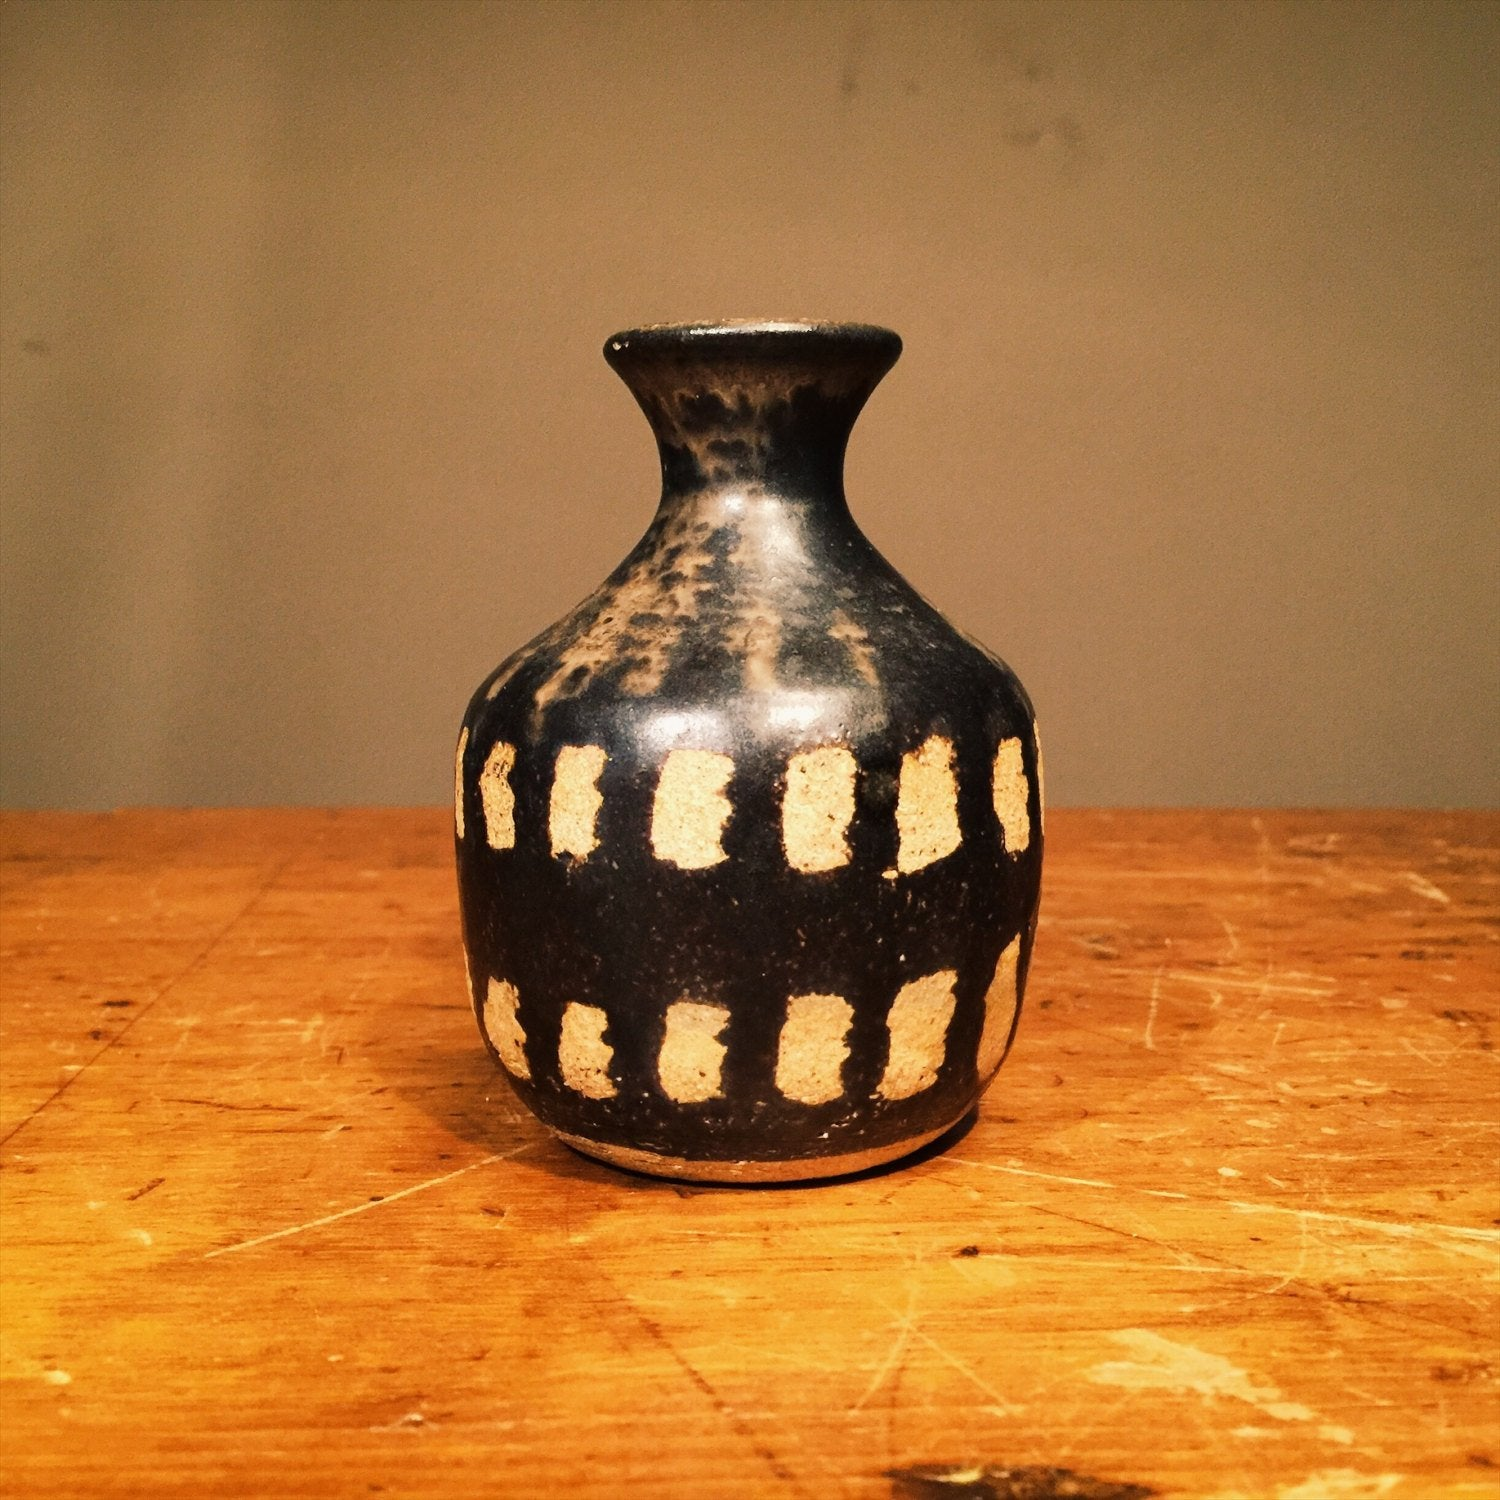 Vintage Art Pottery Vessel - Signed Brooks - Black and White - Skeleton Teeth - Gun metal glaze